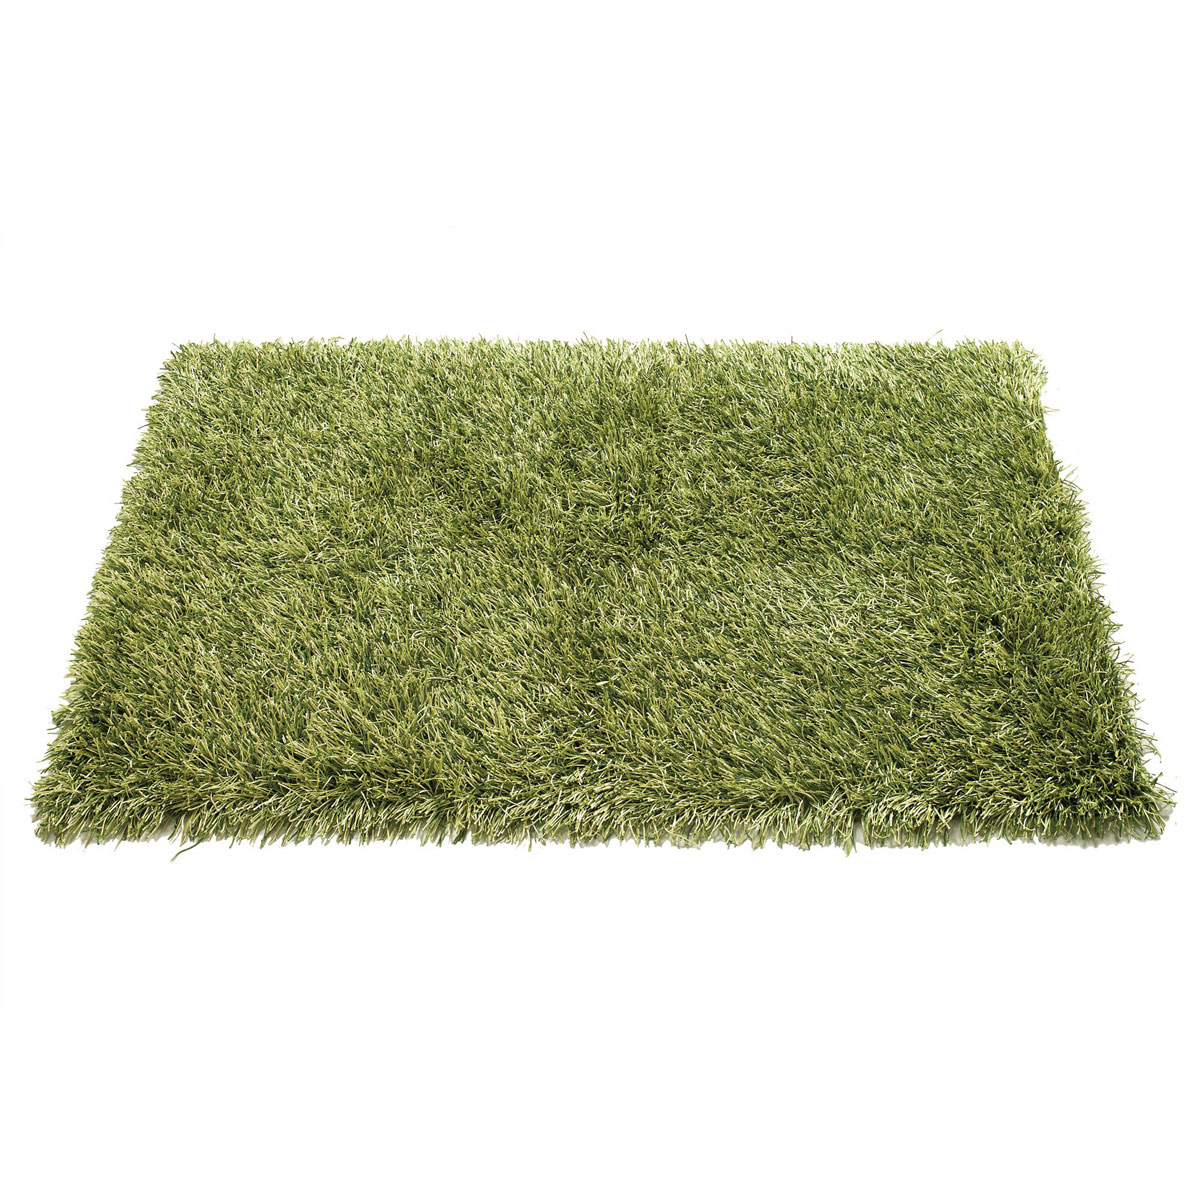 Excellent Outdoor Shag Rug - The Green Head UI48